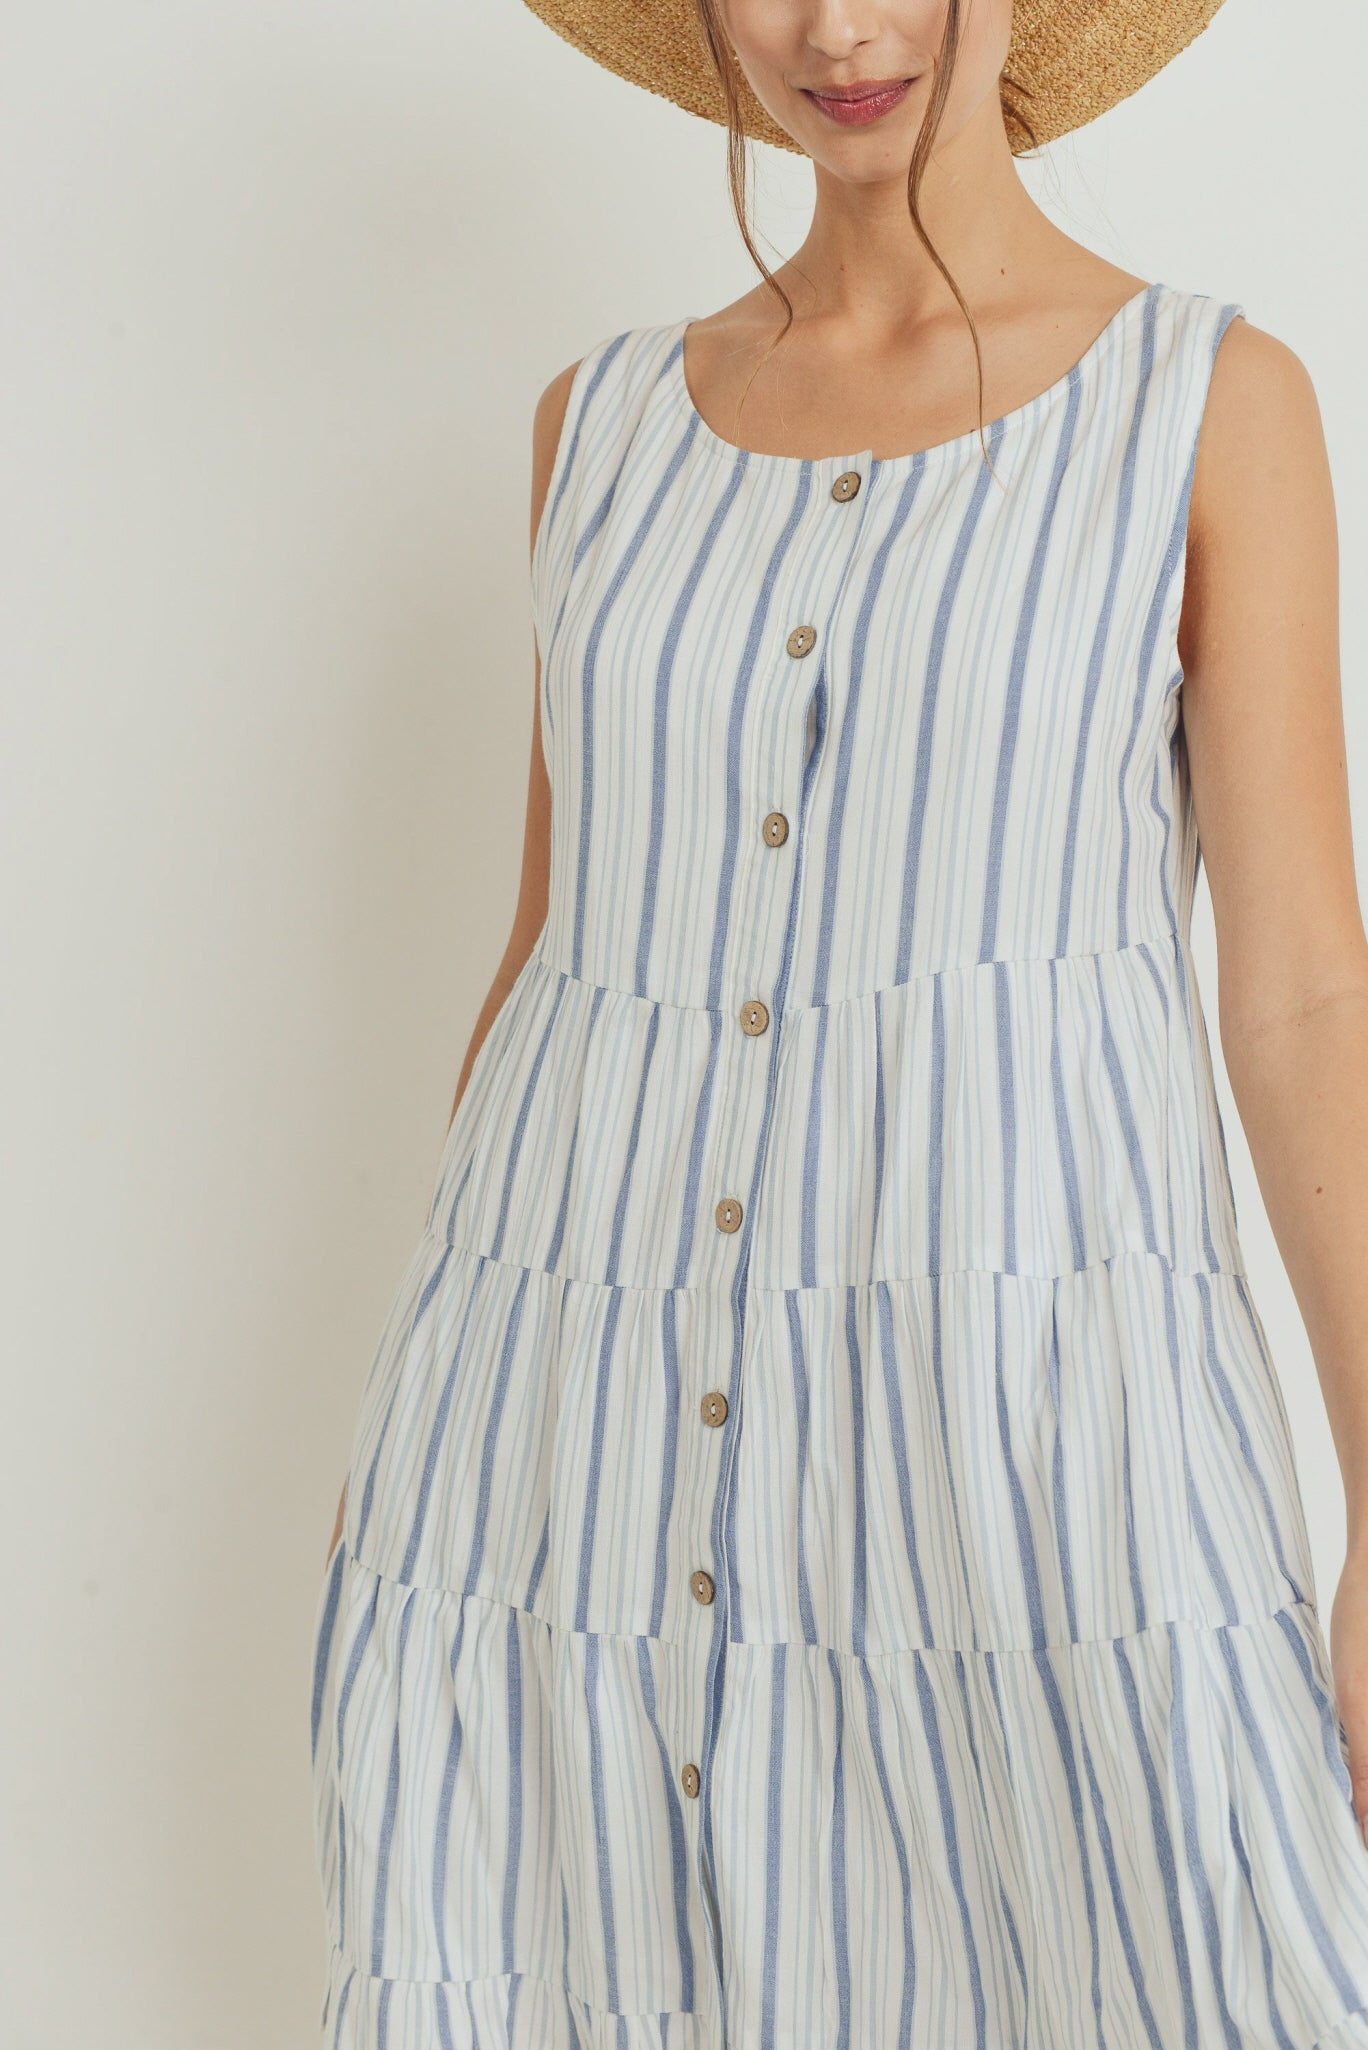 Cancan Round Neck Sleeveless Stripe Dress